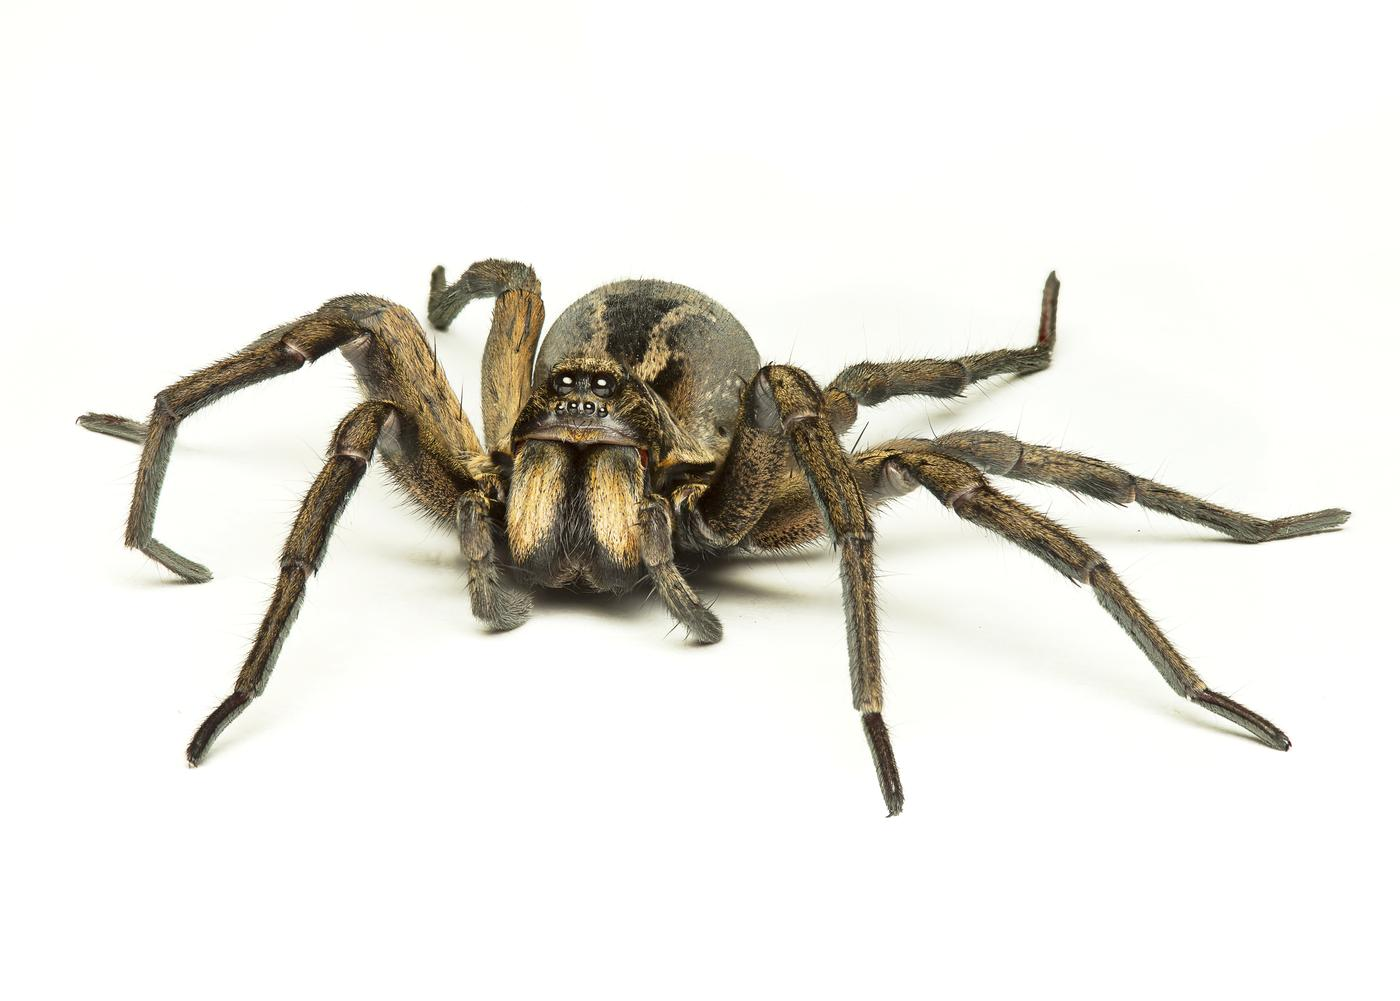 Everybody calm down – at least these 7 spiders aren't in your homes